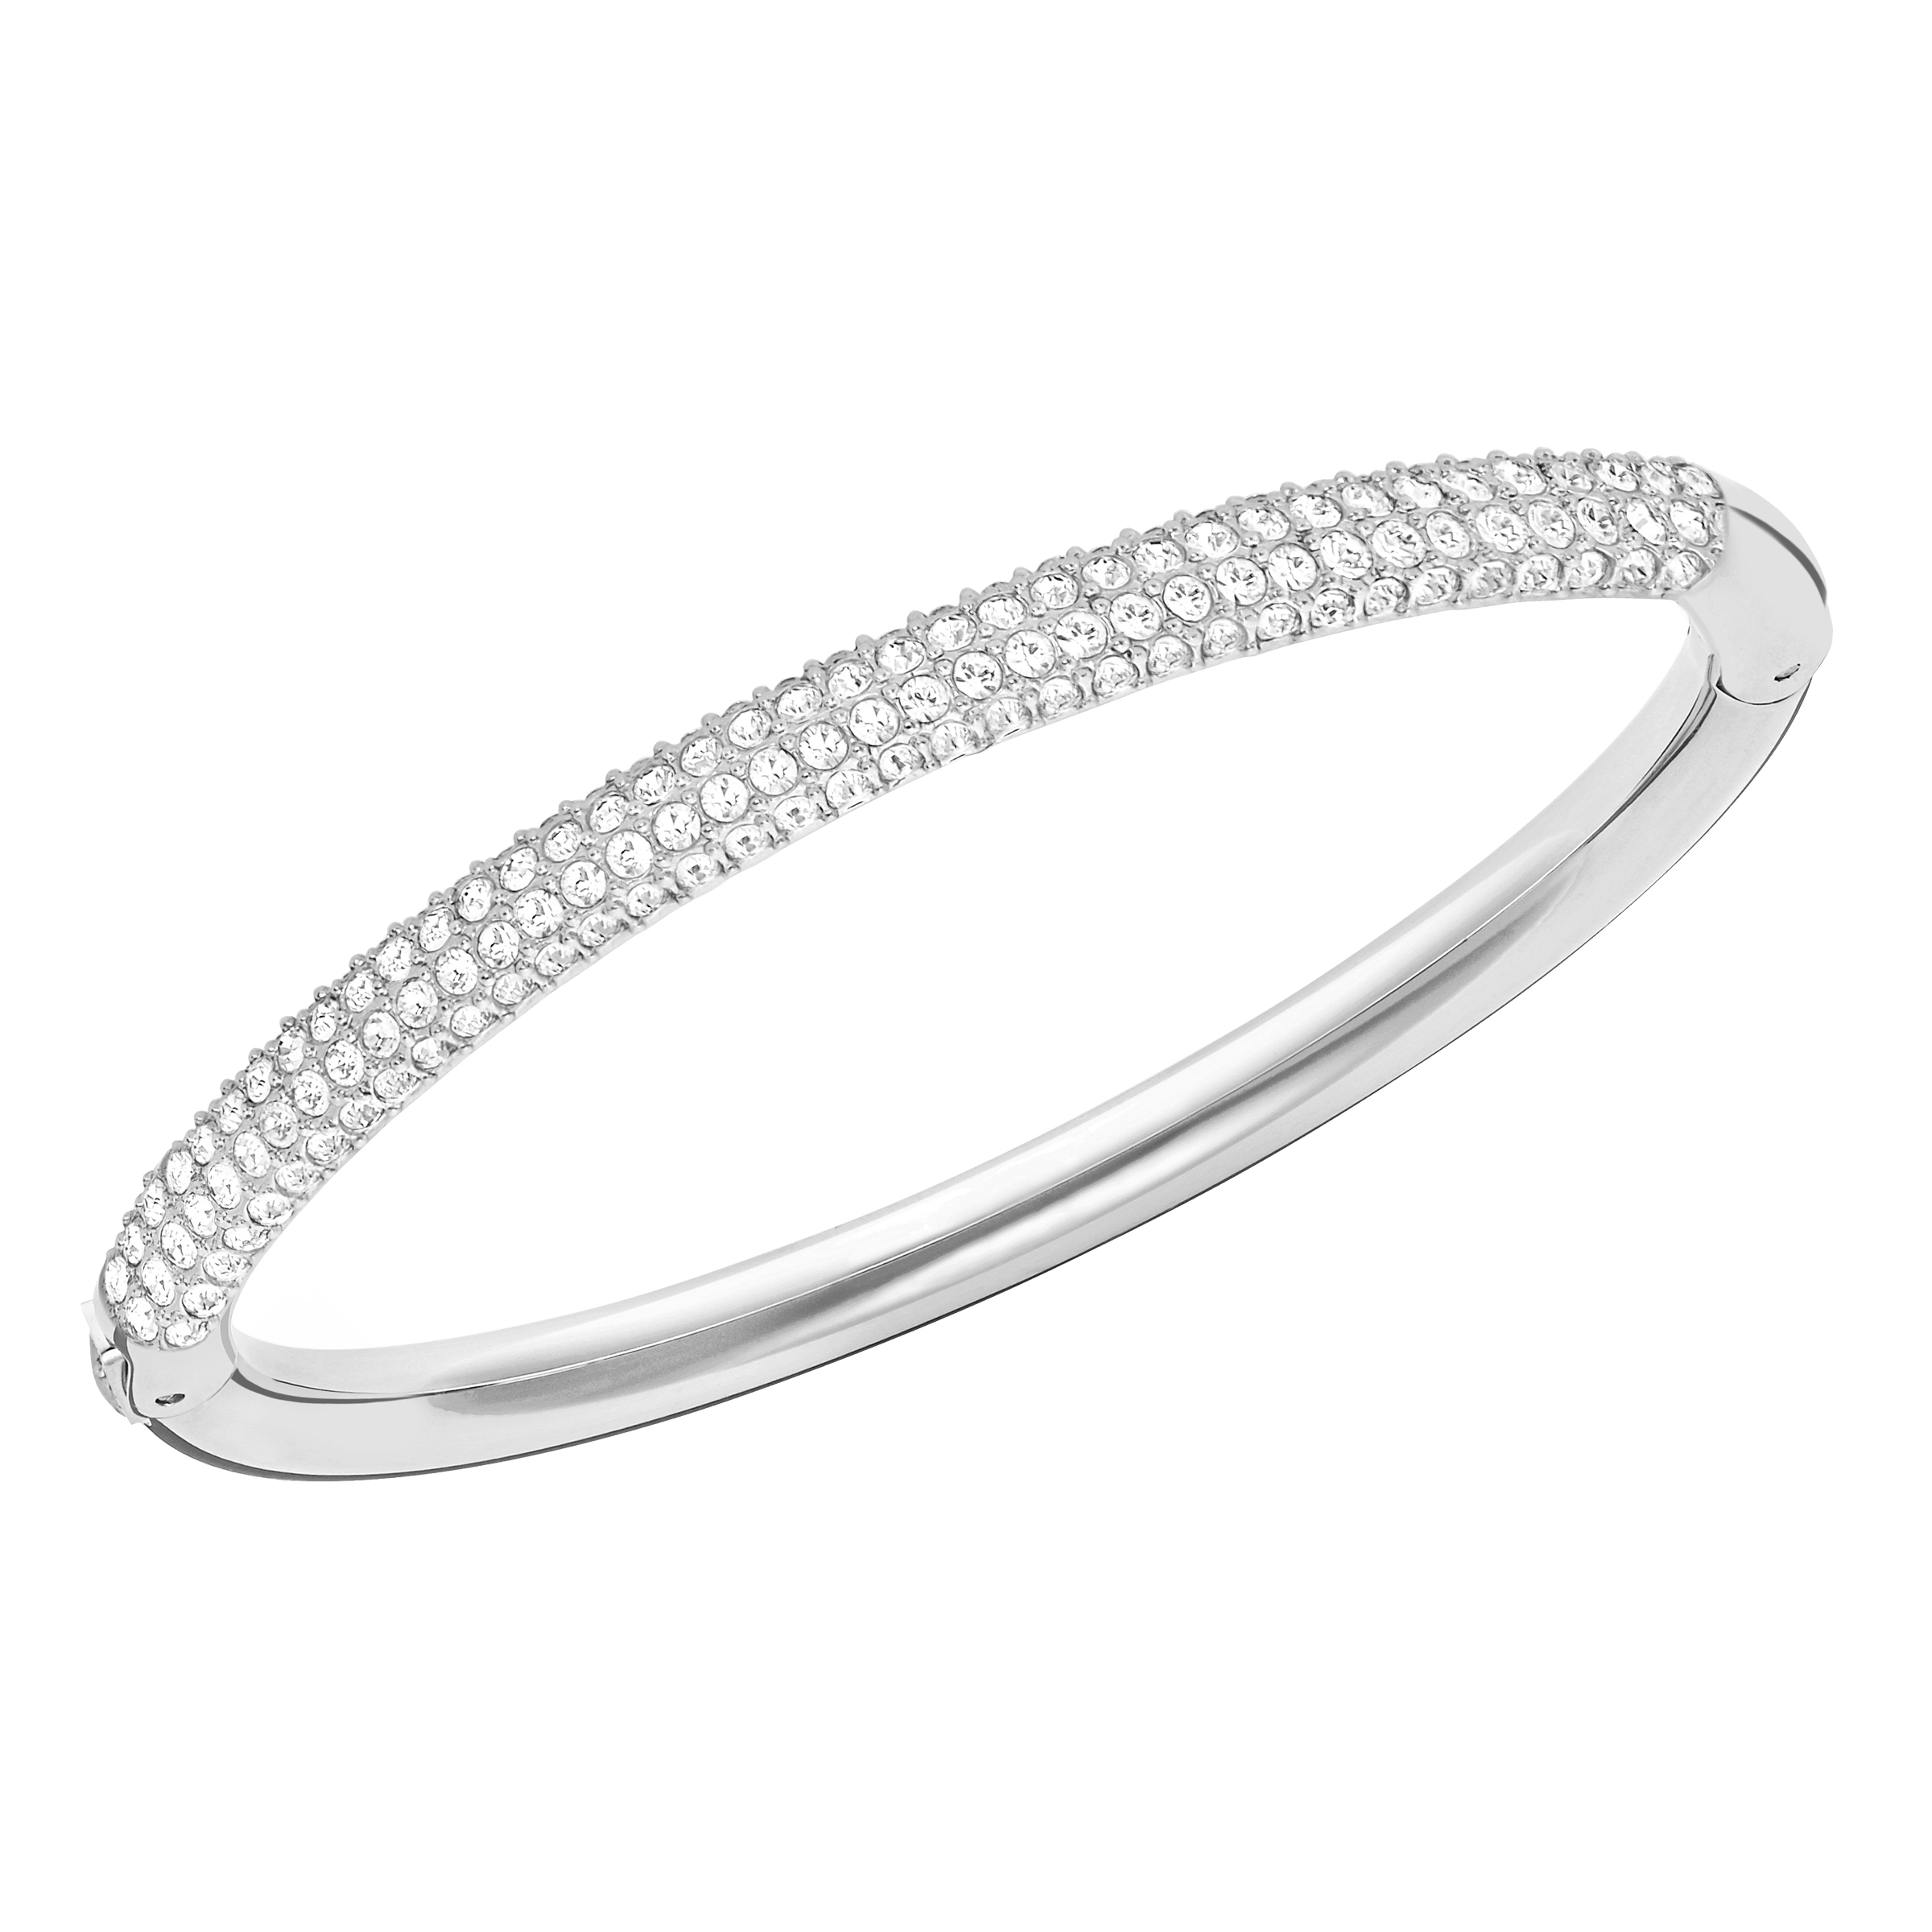 Stone Mini Bangle, White, Rhodium Plating